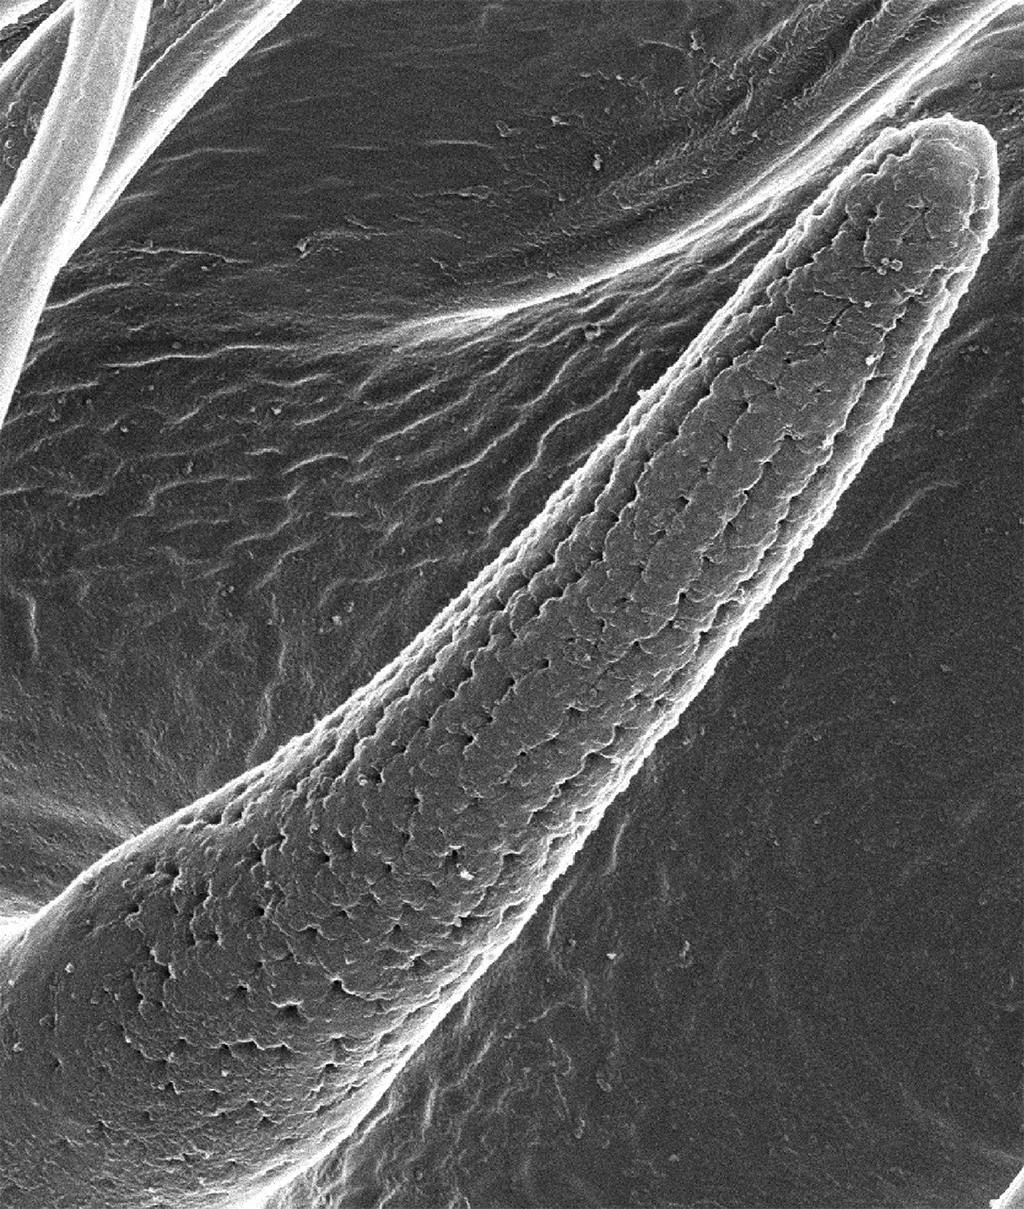 image of fly nanopores